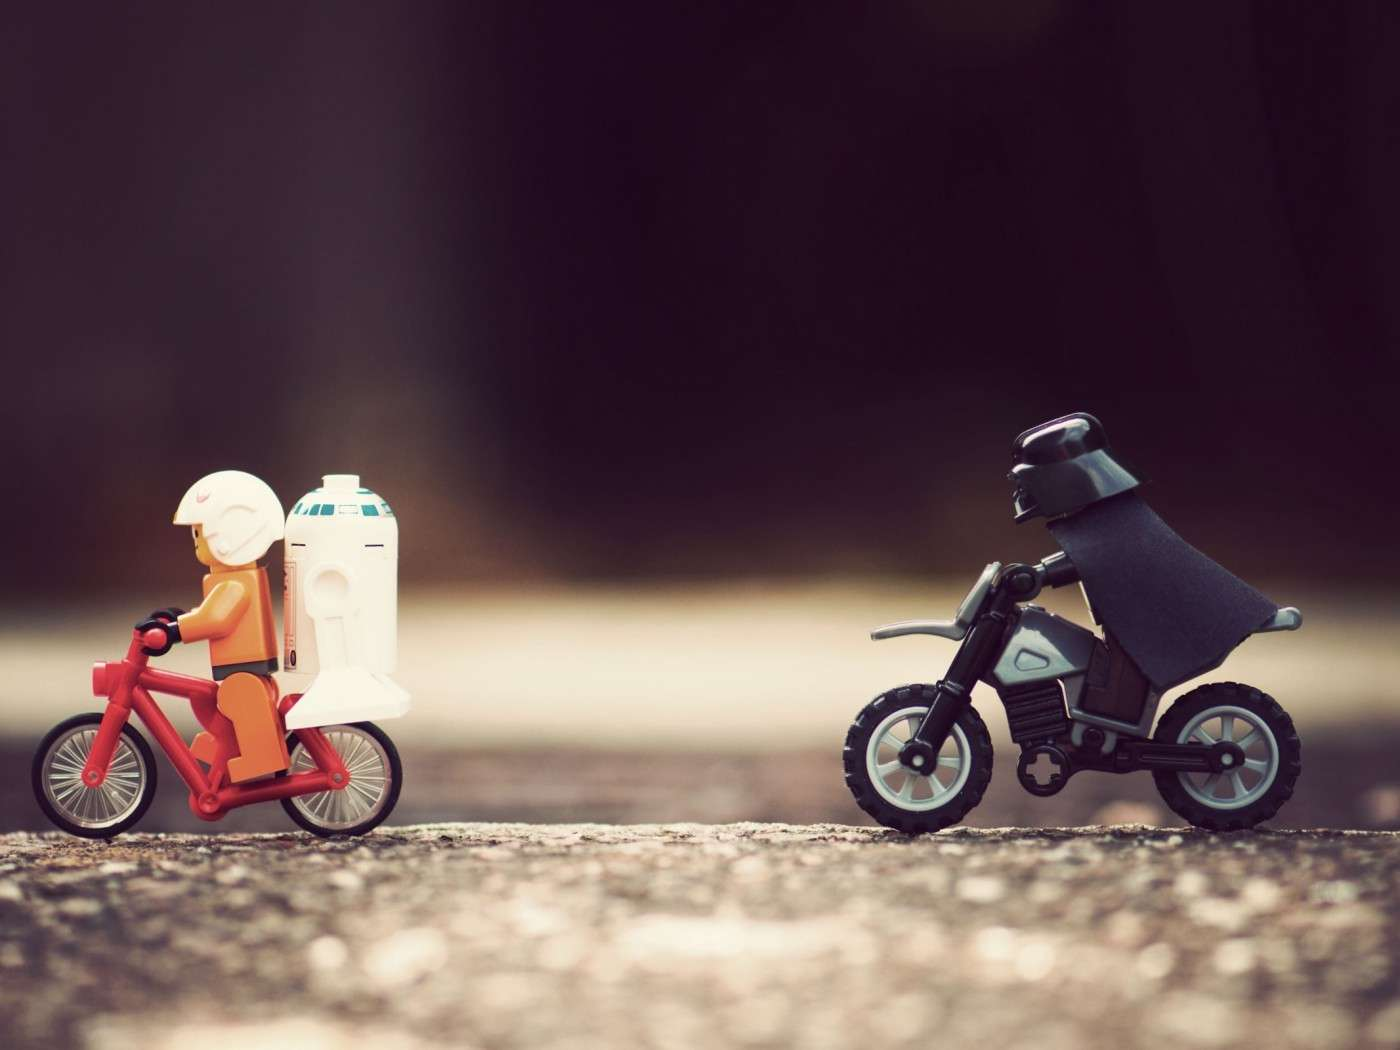 star-wars-troopers-lego-toy-fun-humor-bicycle-bike-darth-vader-other-1050x1400.